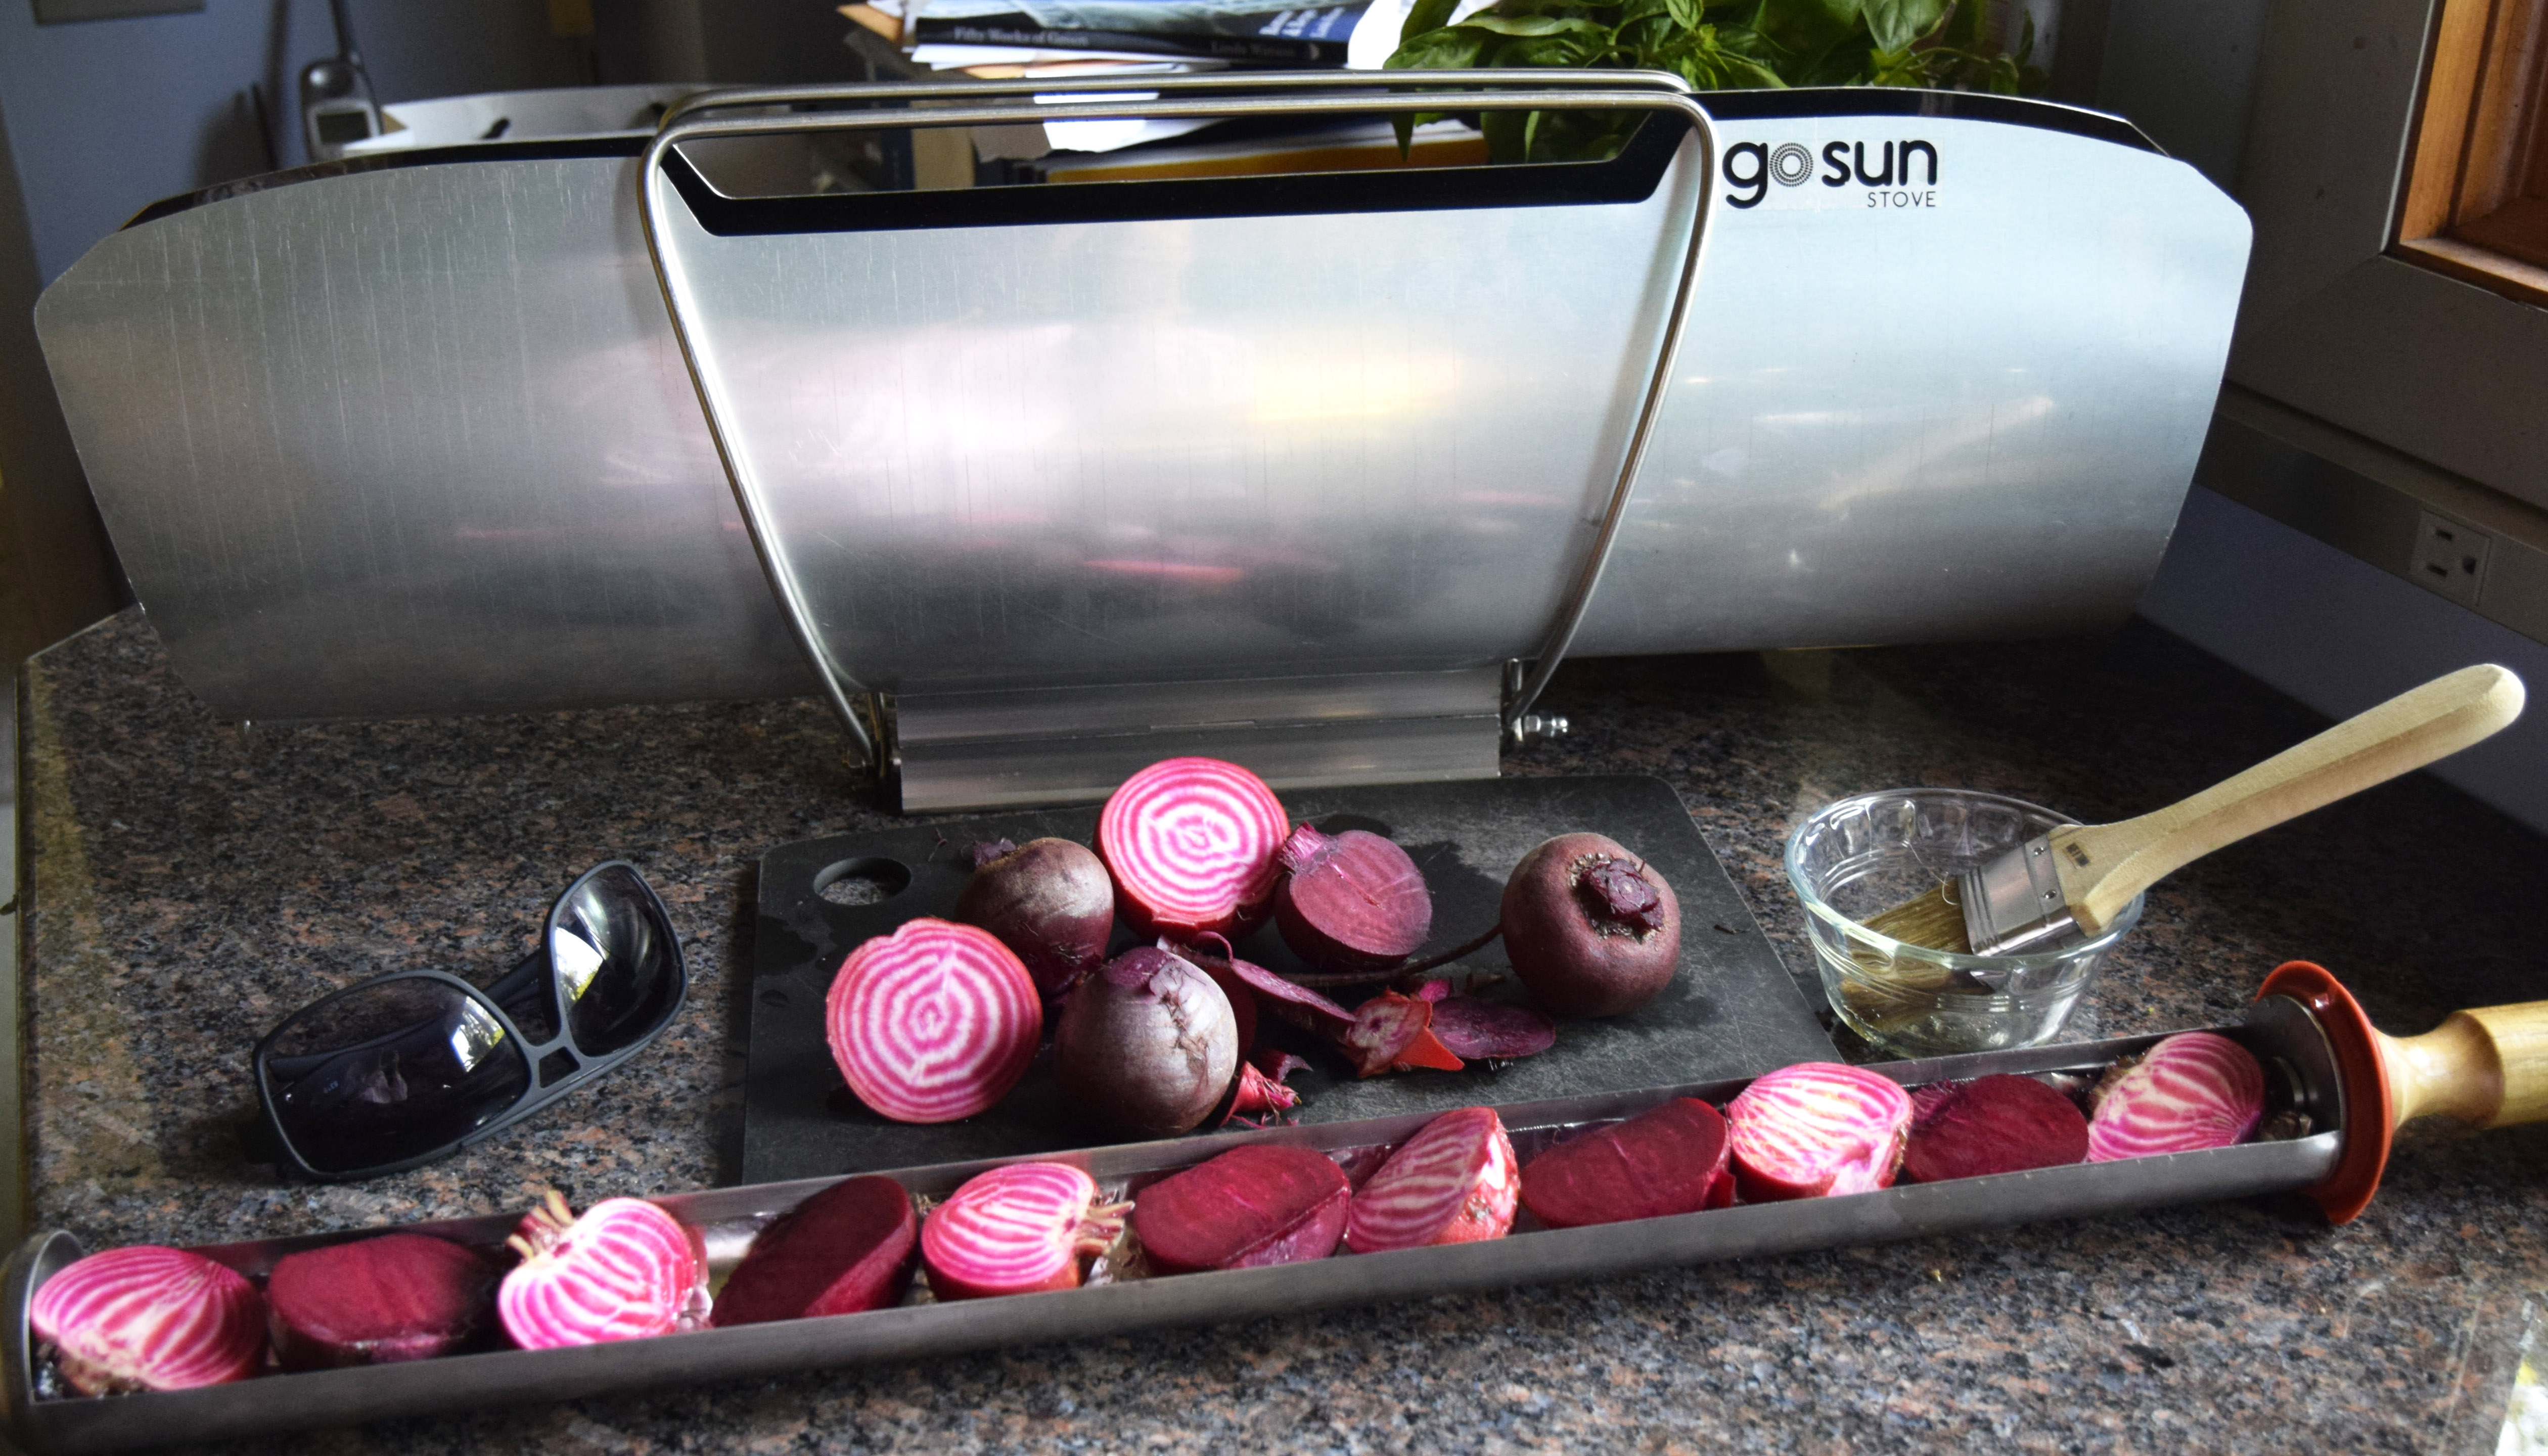 A GoSun solar stove with beets in the cooking tube